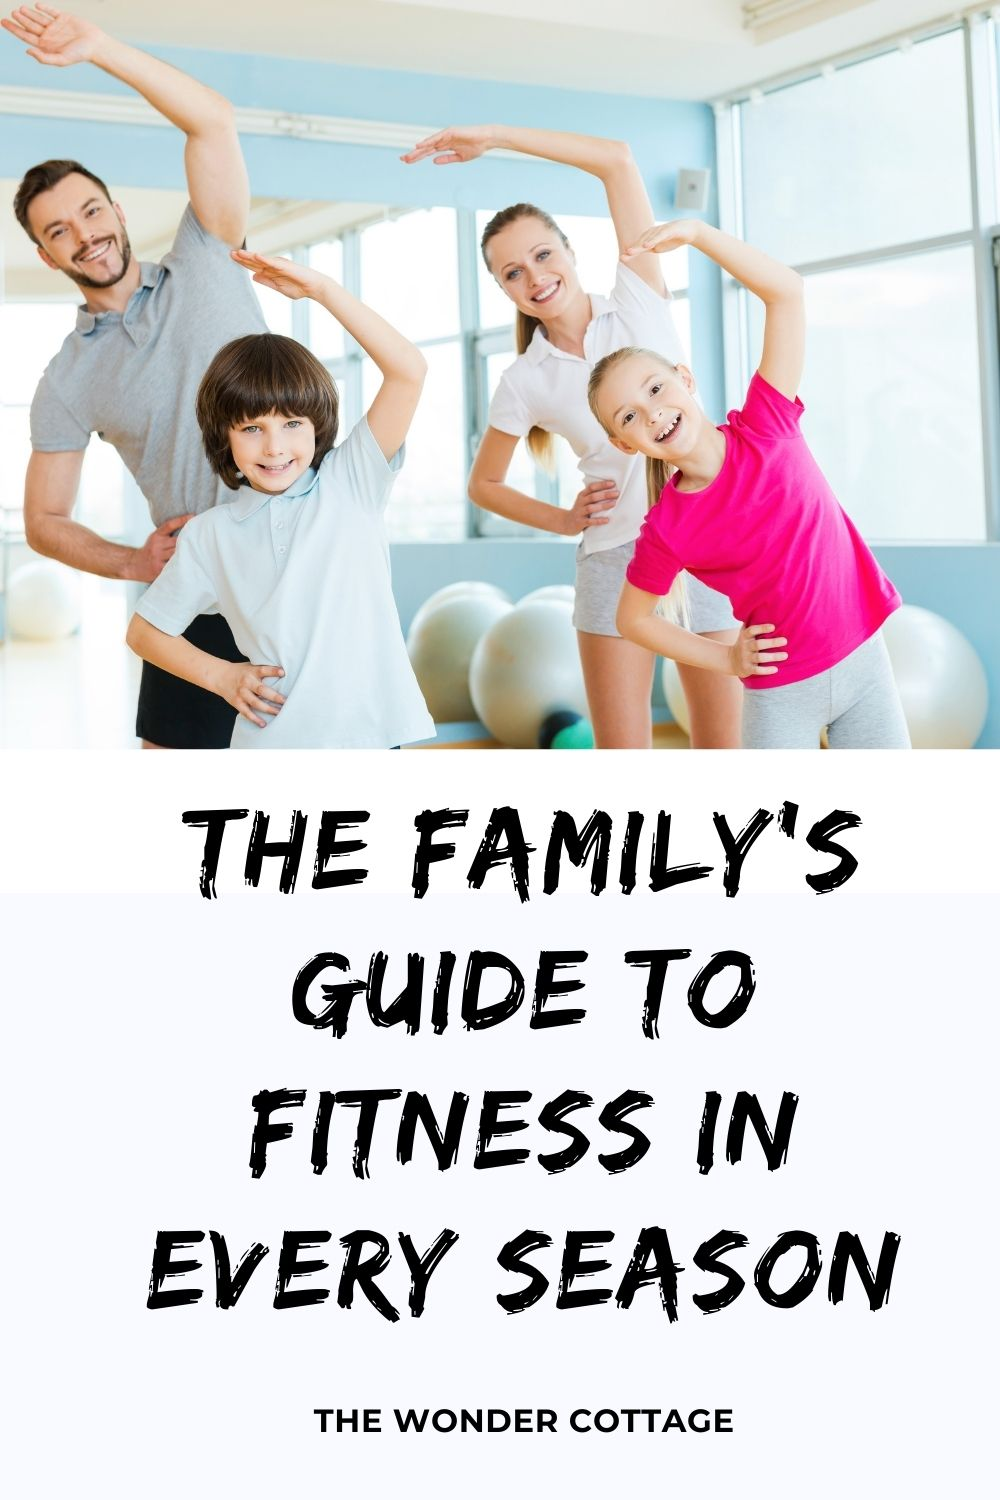 the family's guide to fitness in every season